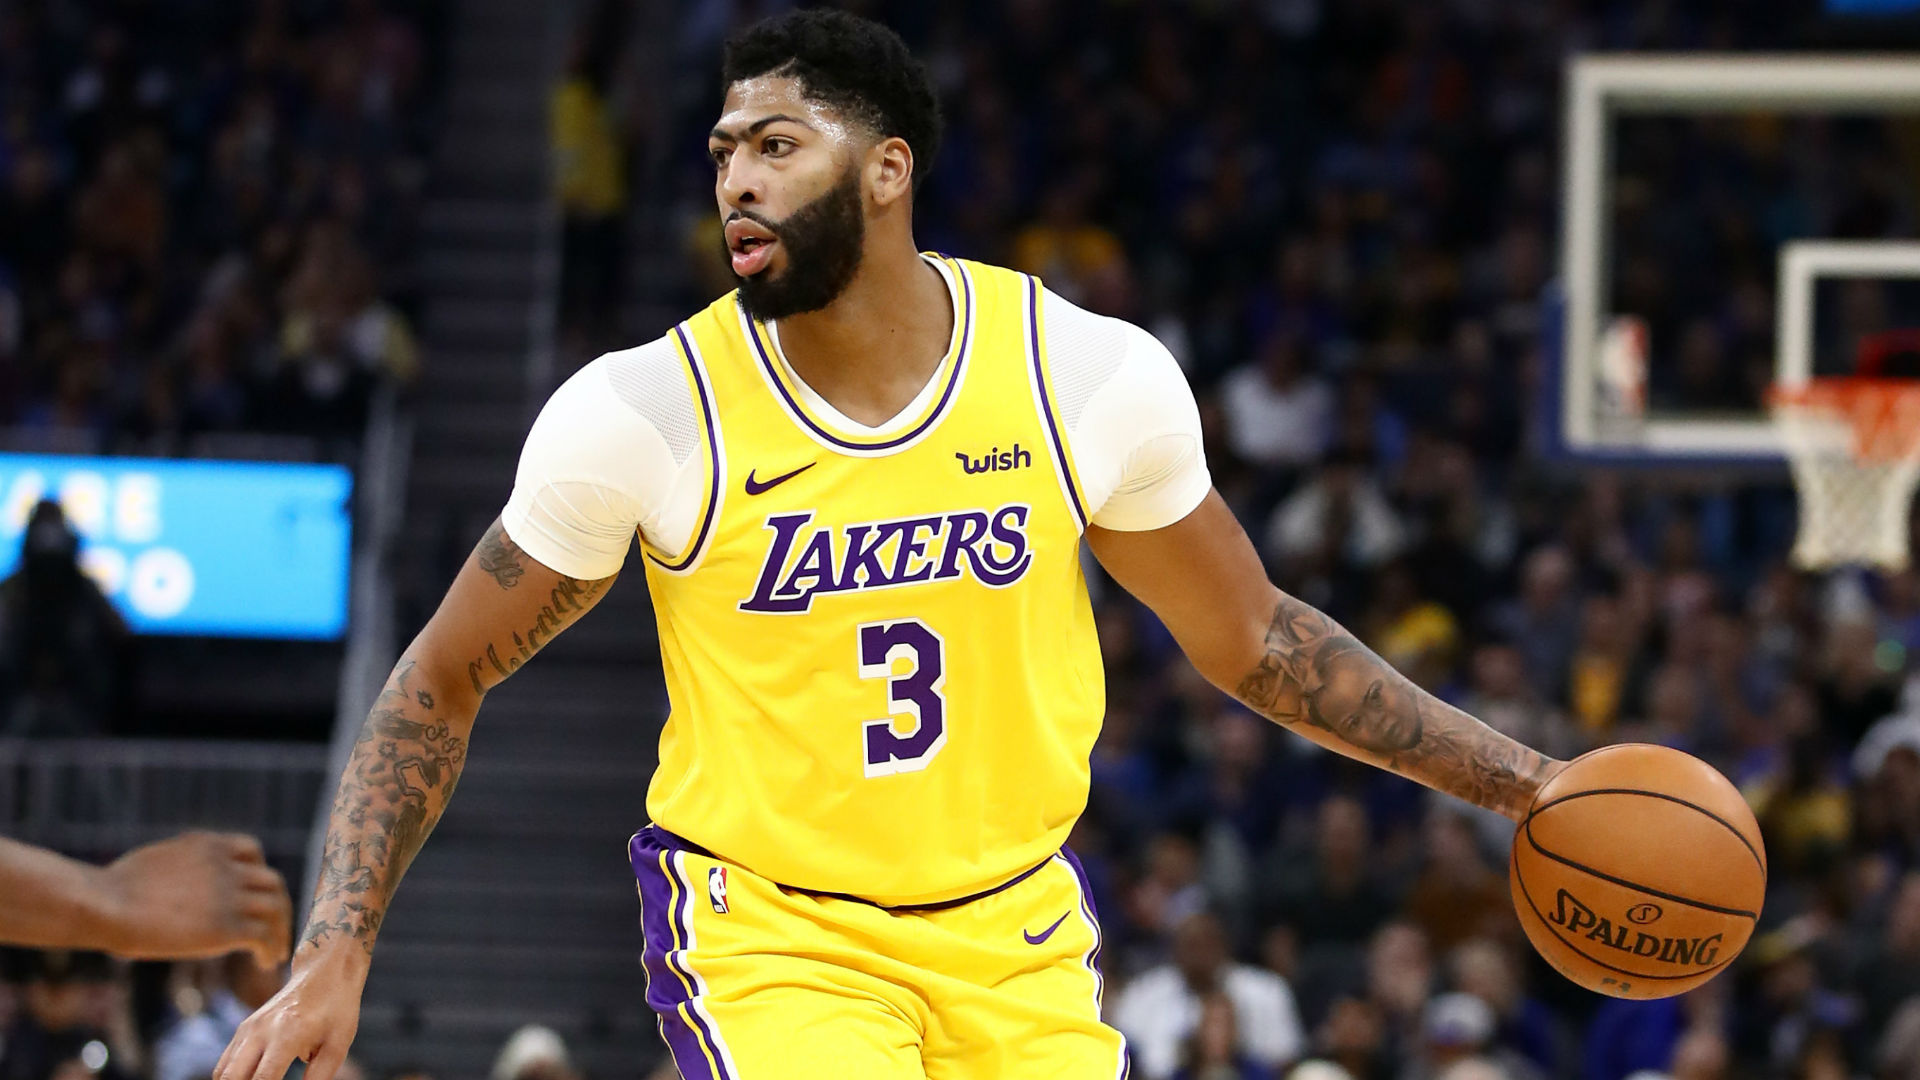 Lakers react to Anthony Davis' impressive preseason debut with L.A.